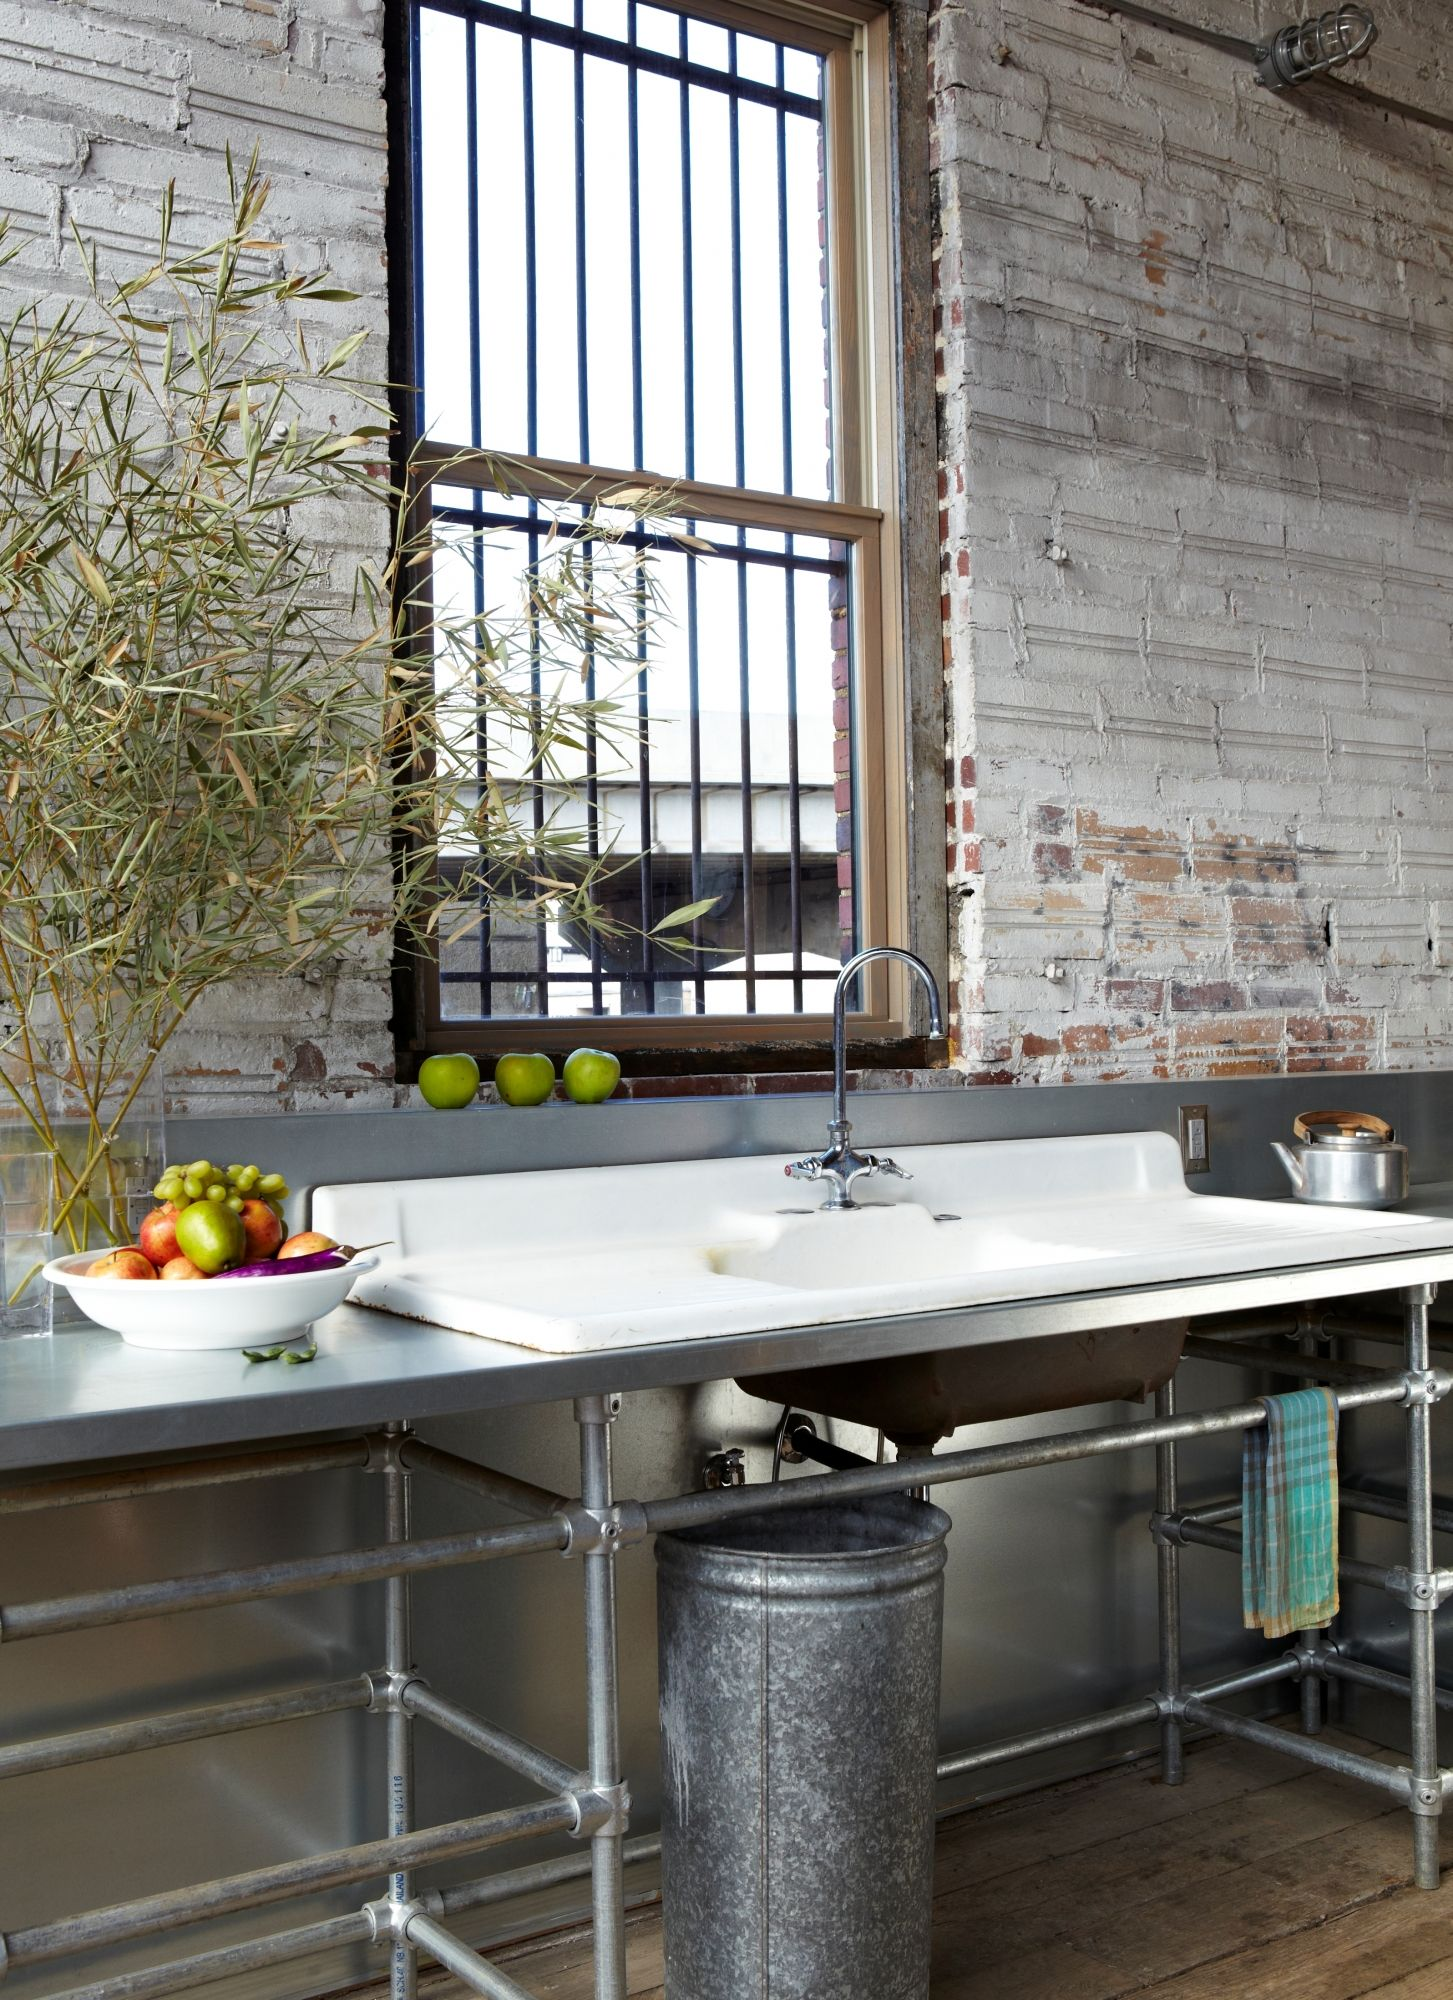 Eclectic Single Line Kitchen, Cabinets, Design Initiative, Llc And Cheryl